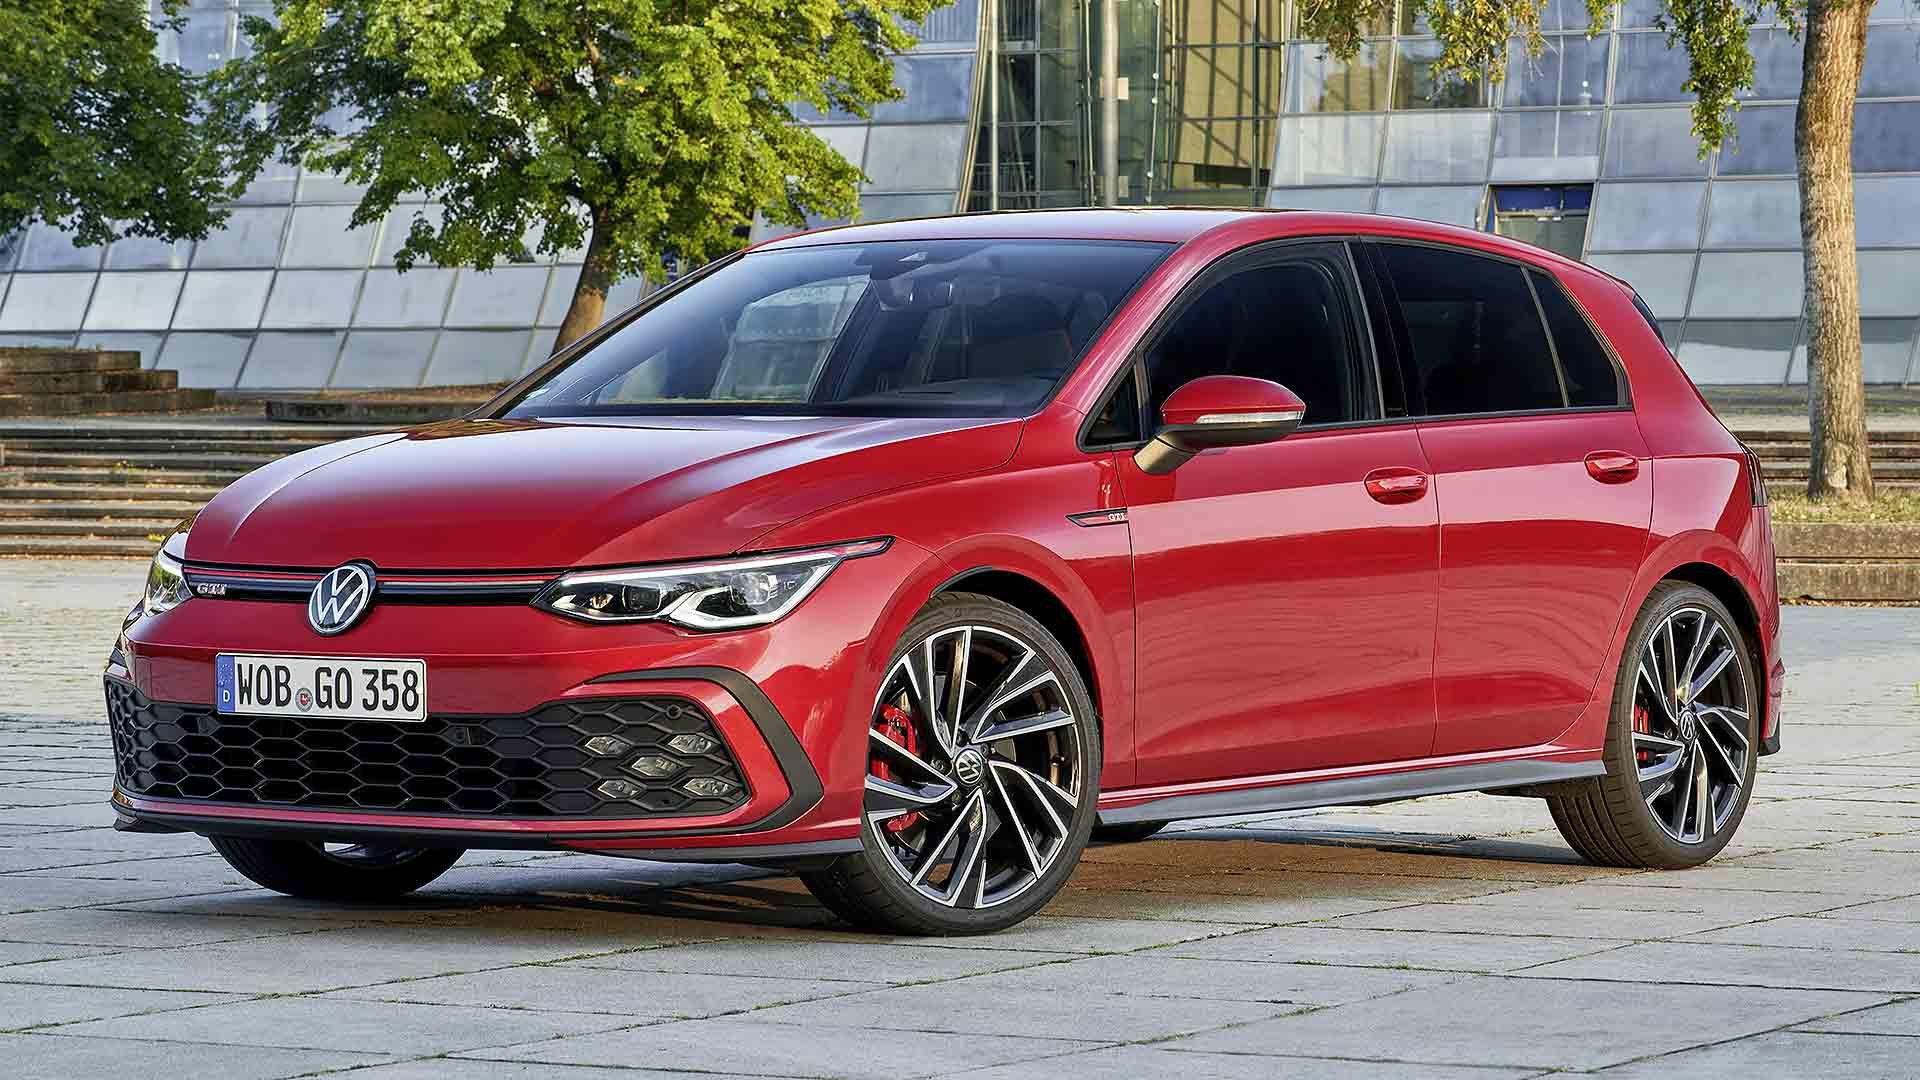 New 2021 Volkswagen Golf Gti And Gte News Prices And Specs Motoring Research